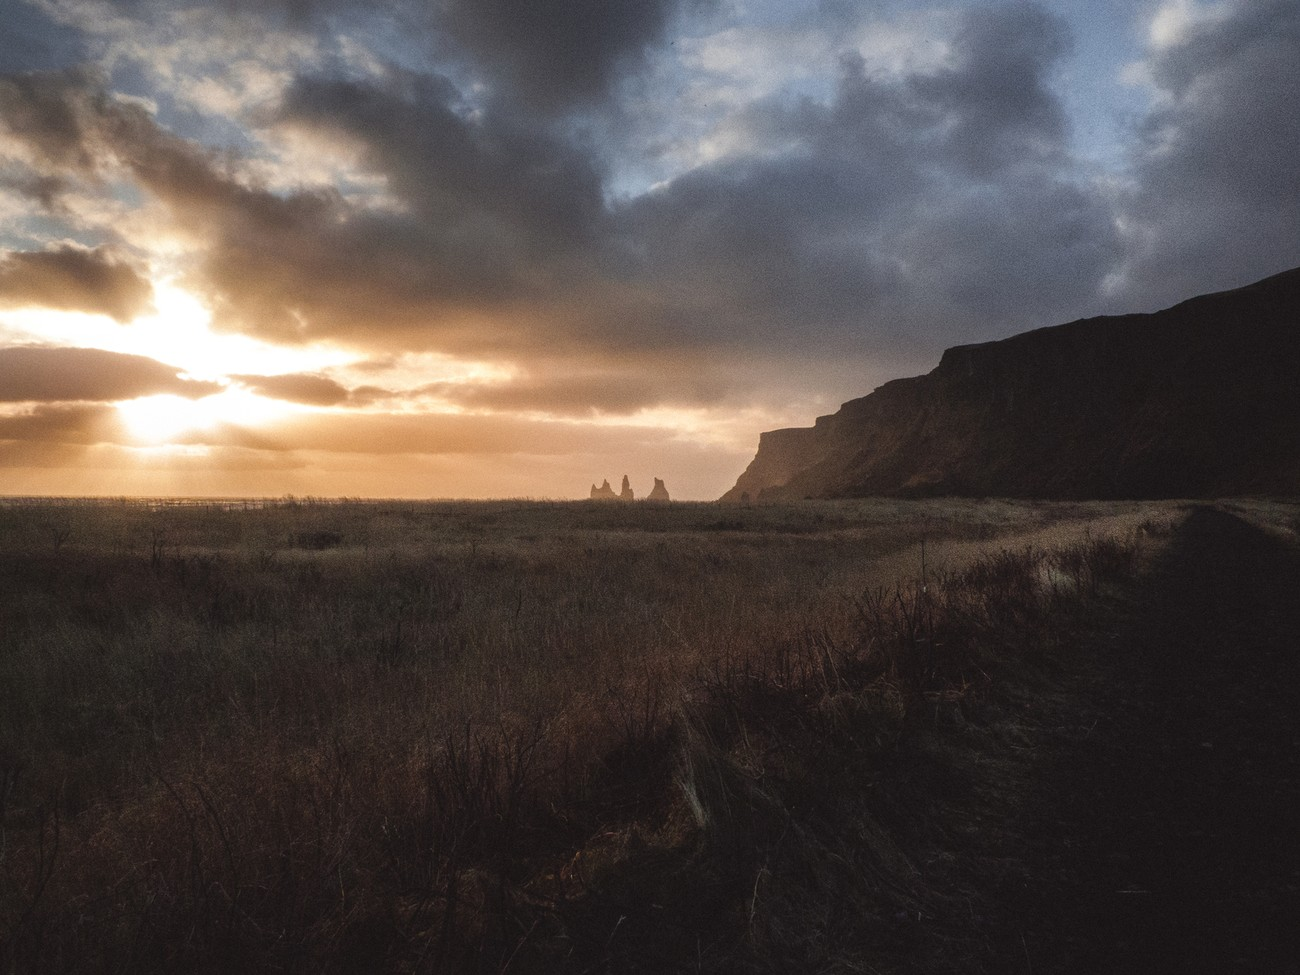 Wandering around the stunning scenery of Vik, Iceland.